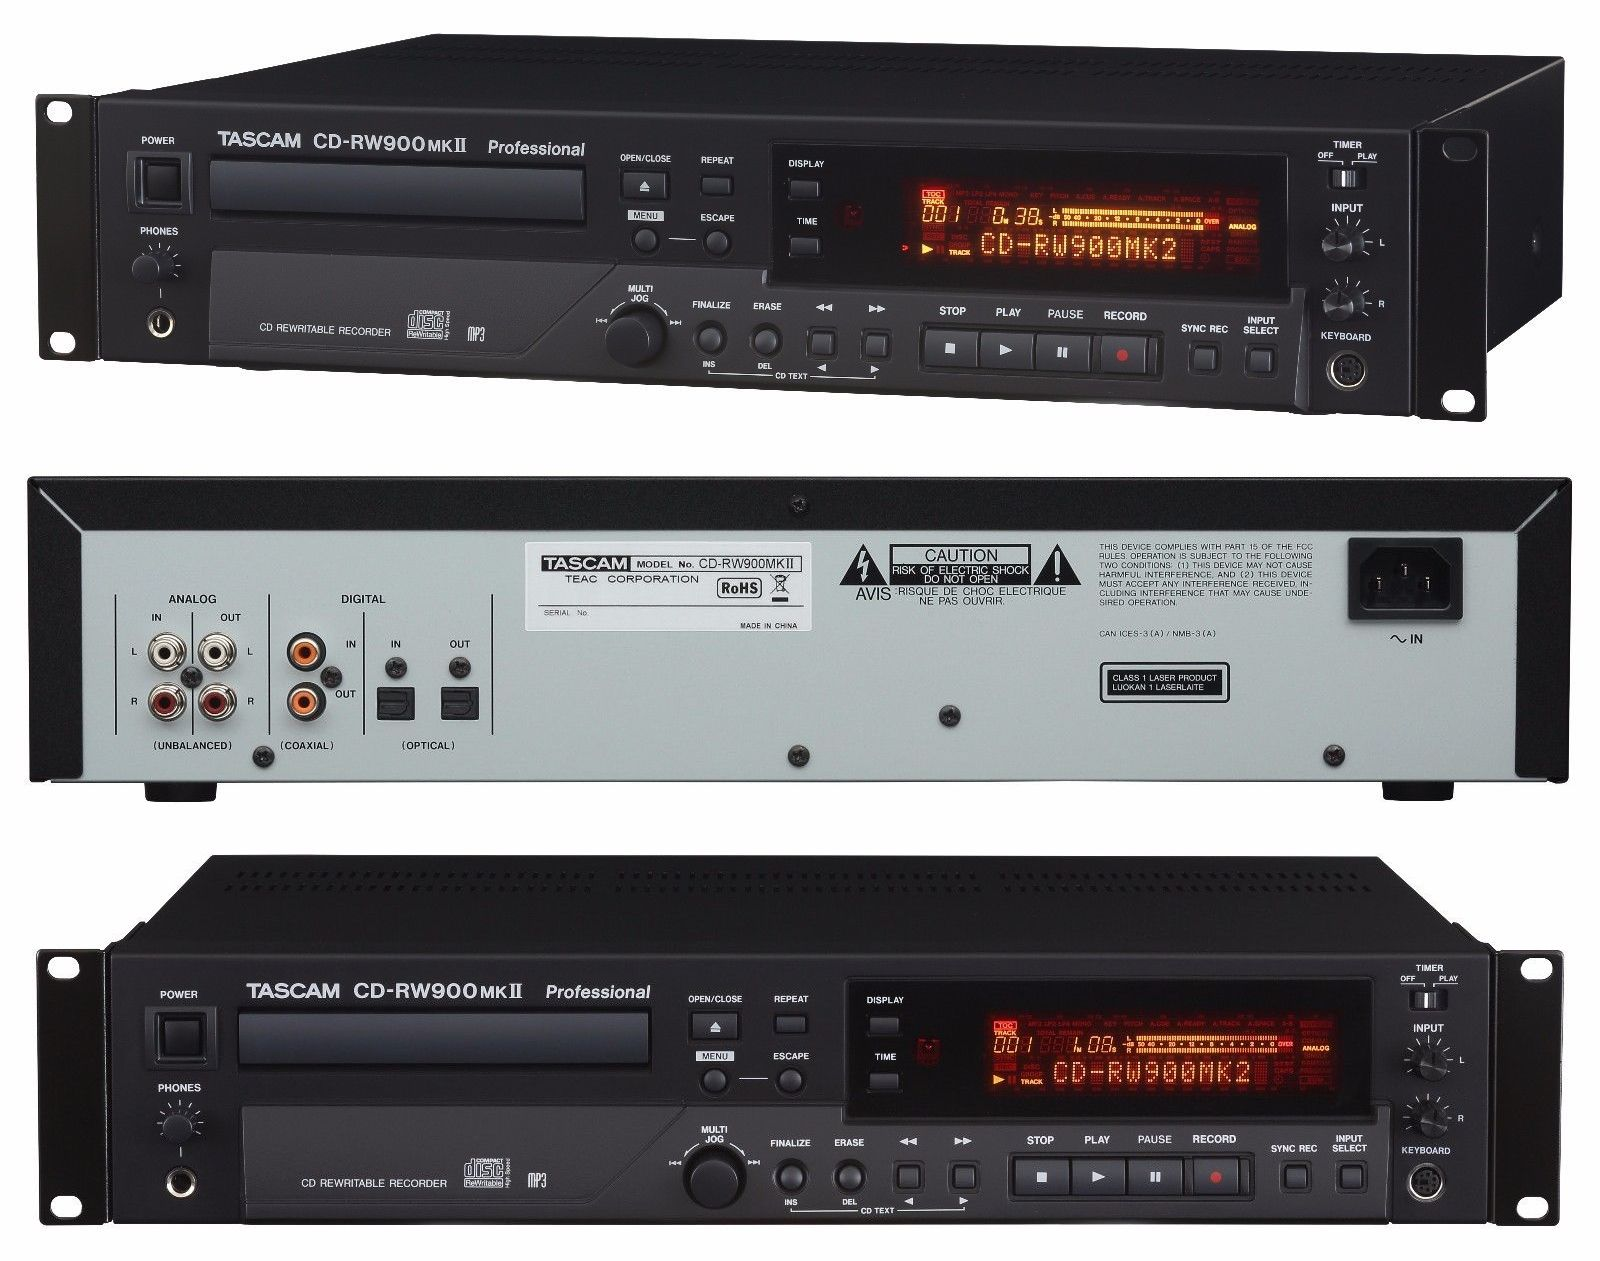 CD Players and Recorders Gpx Mp3 Ready Under Cabinet Clock Cd Radio